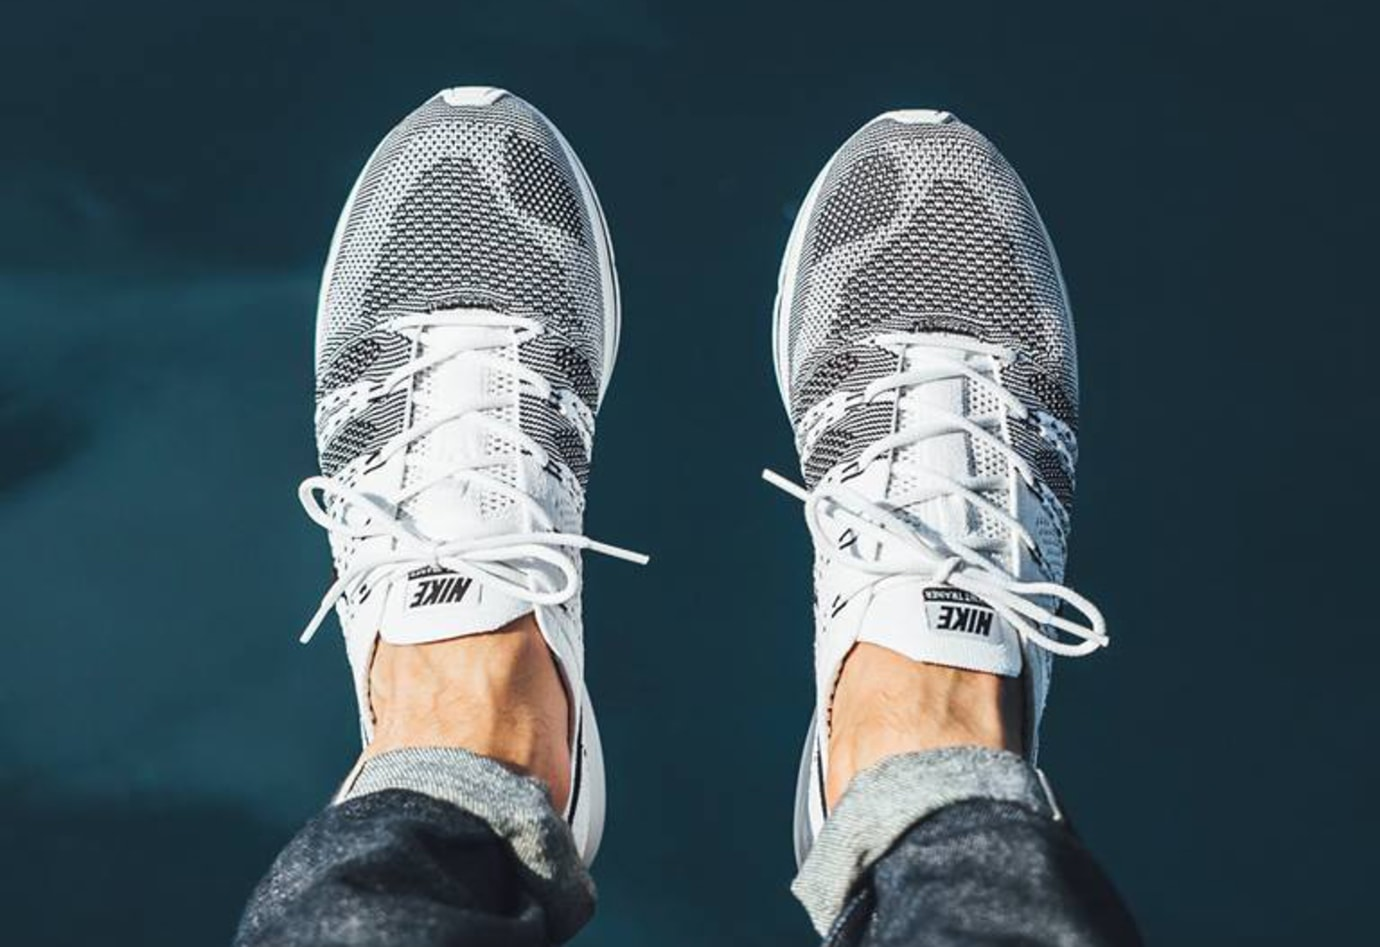 69b831d8451 Image via Titolo White Black Nike Flyknit Trainer On Feet 3